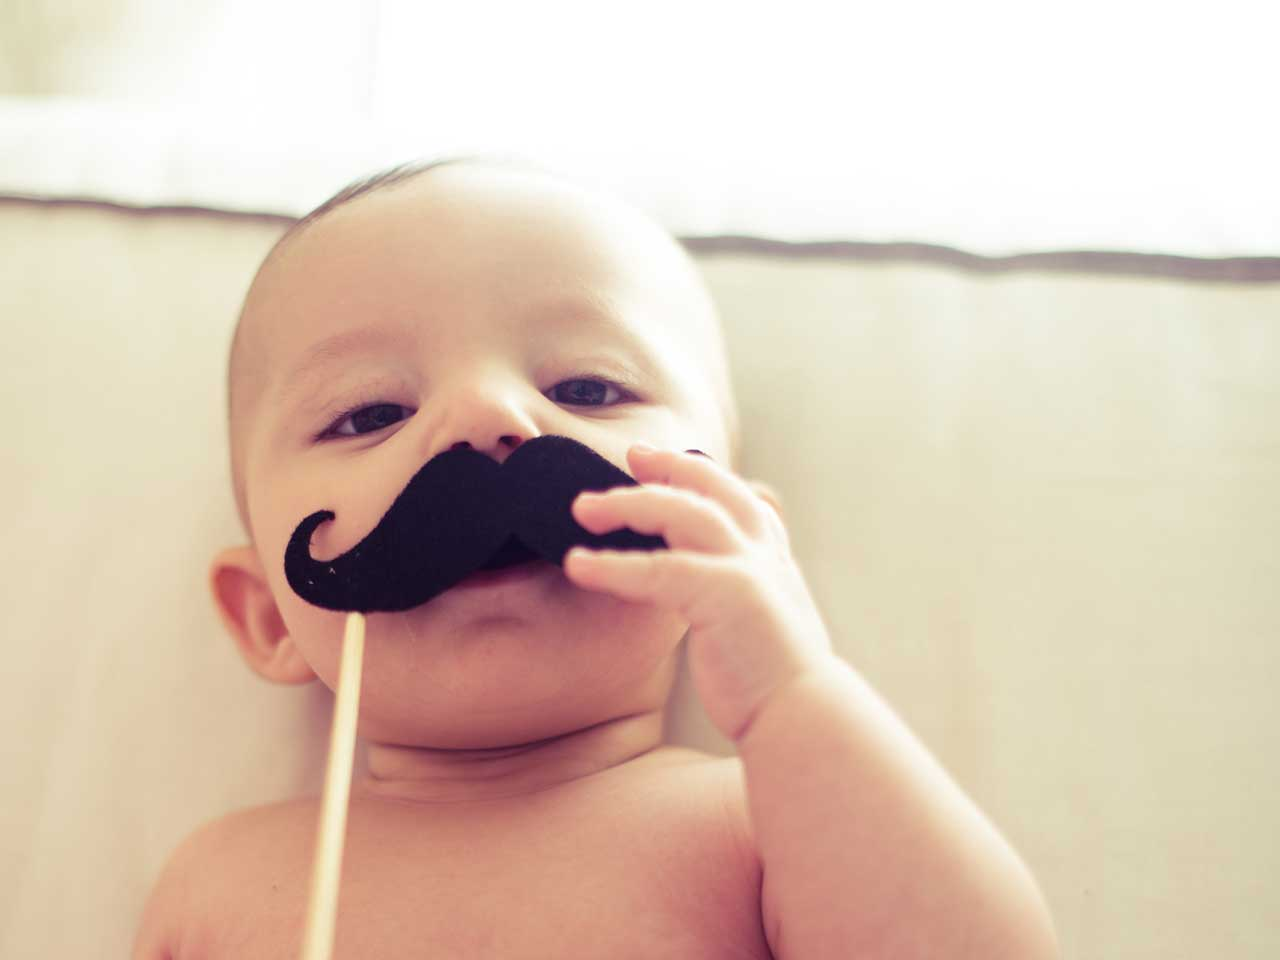 Baby holding up a fake moustache